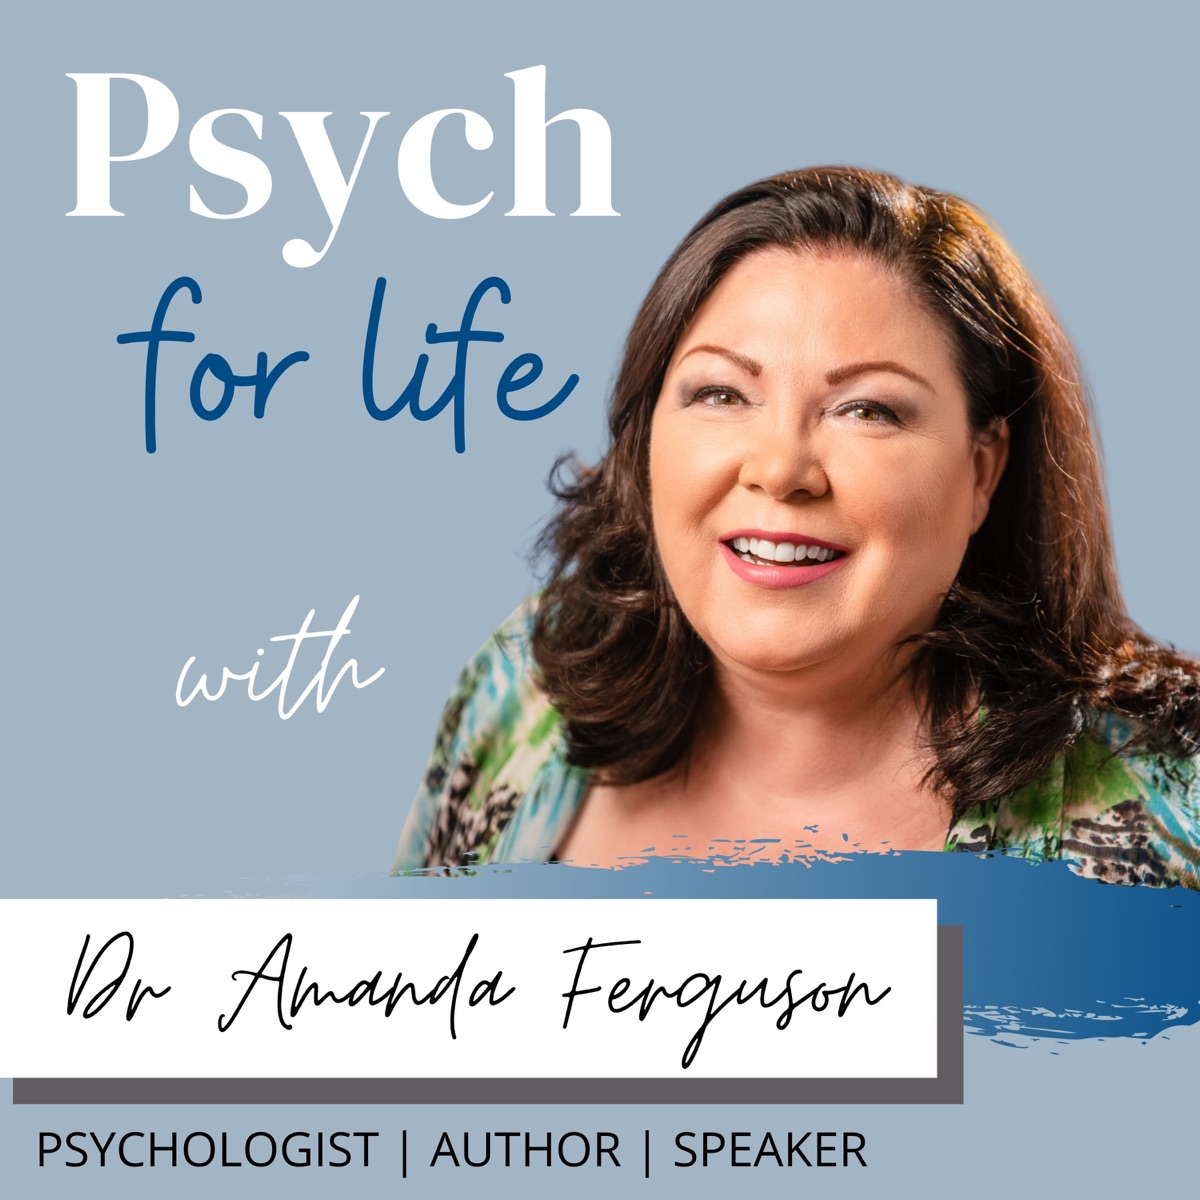 Psych for Life with Dr. Amanda Ferguson